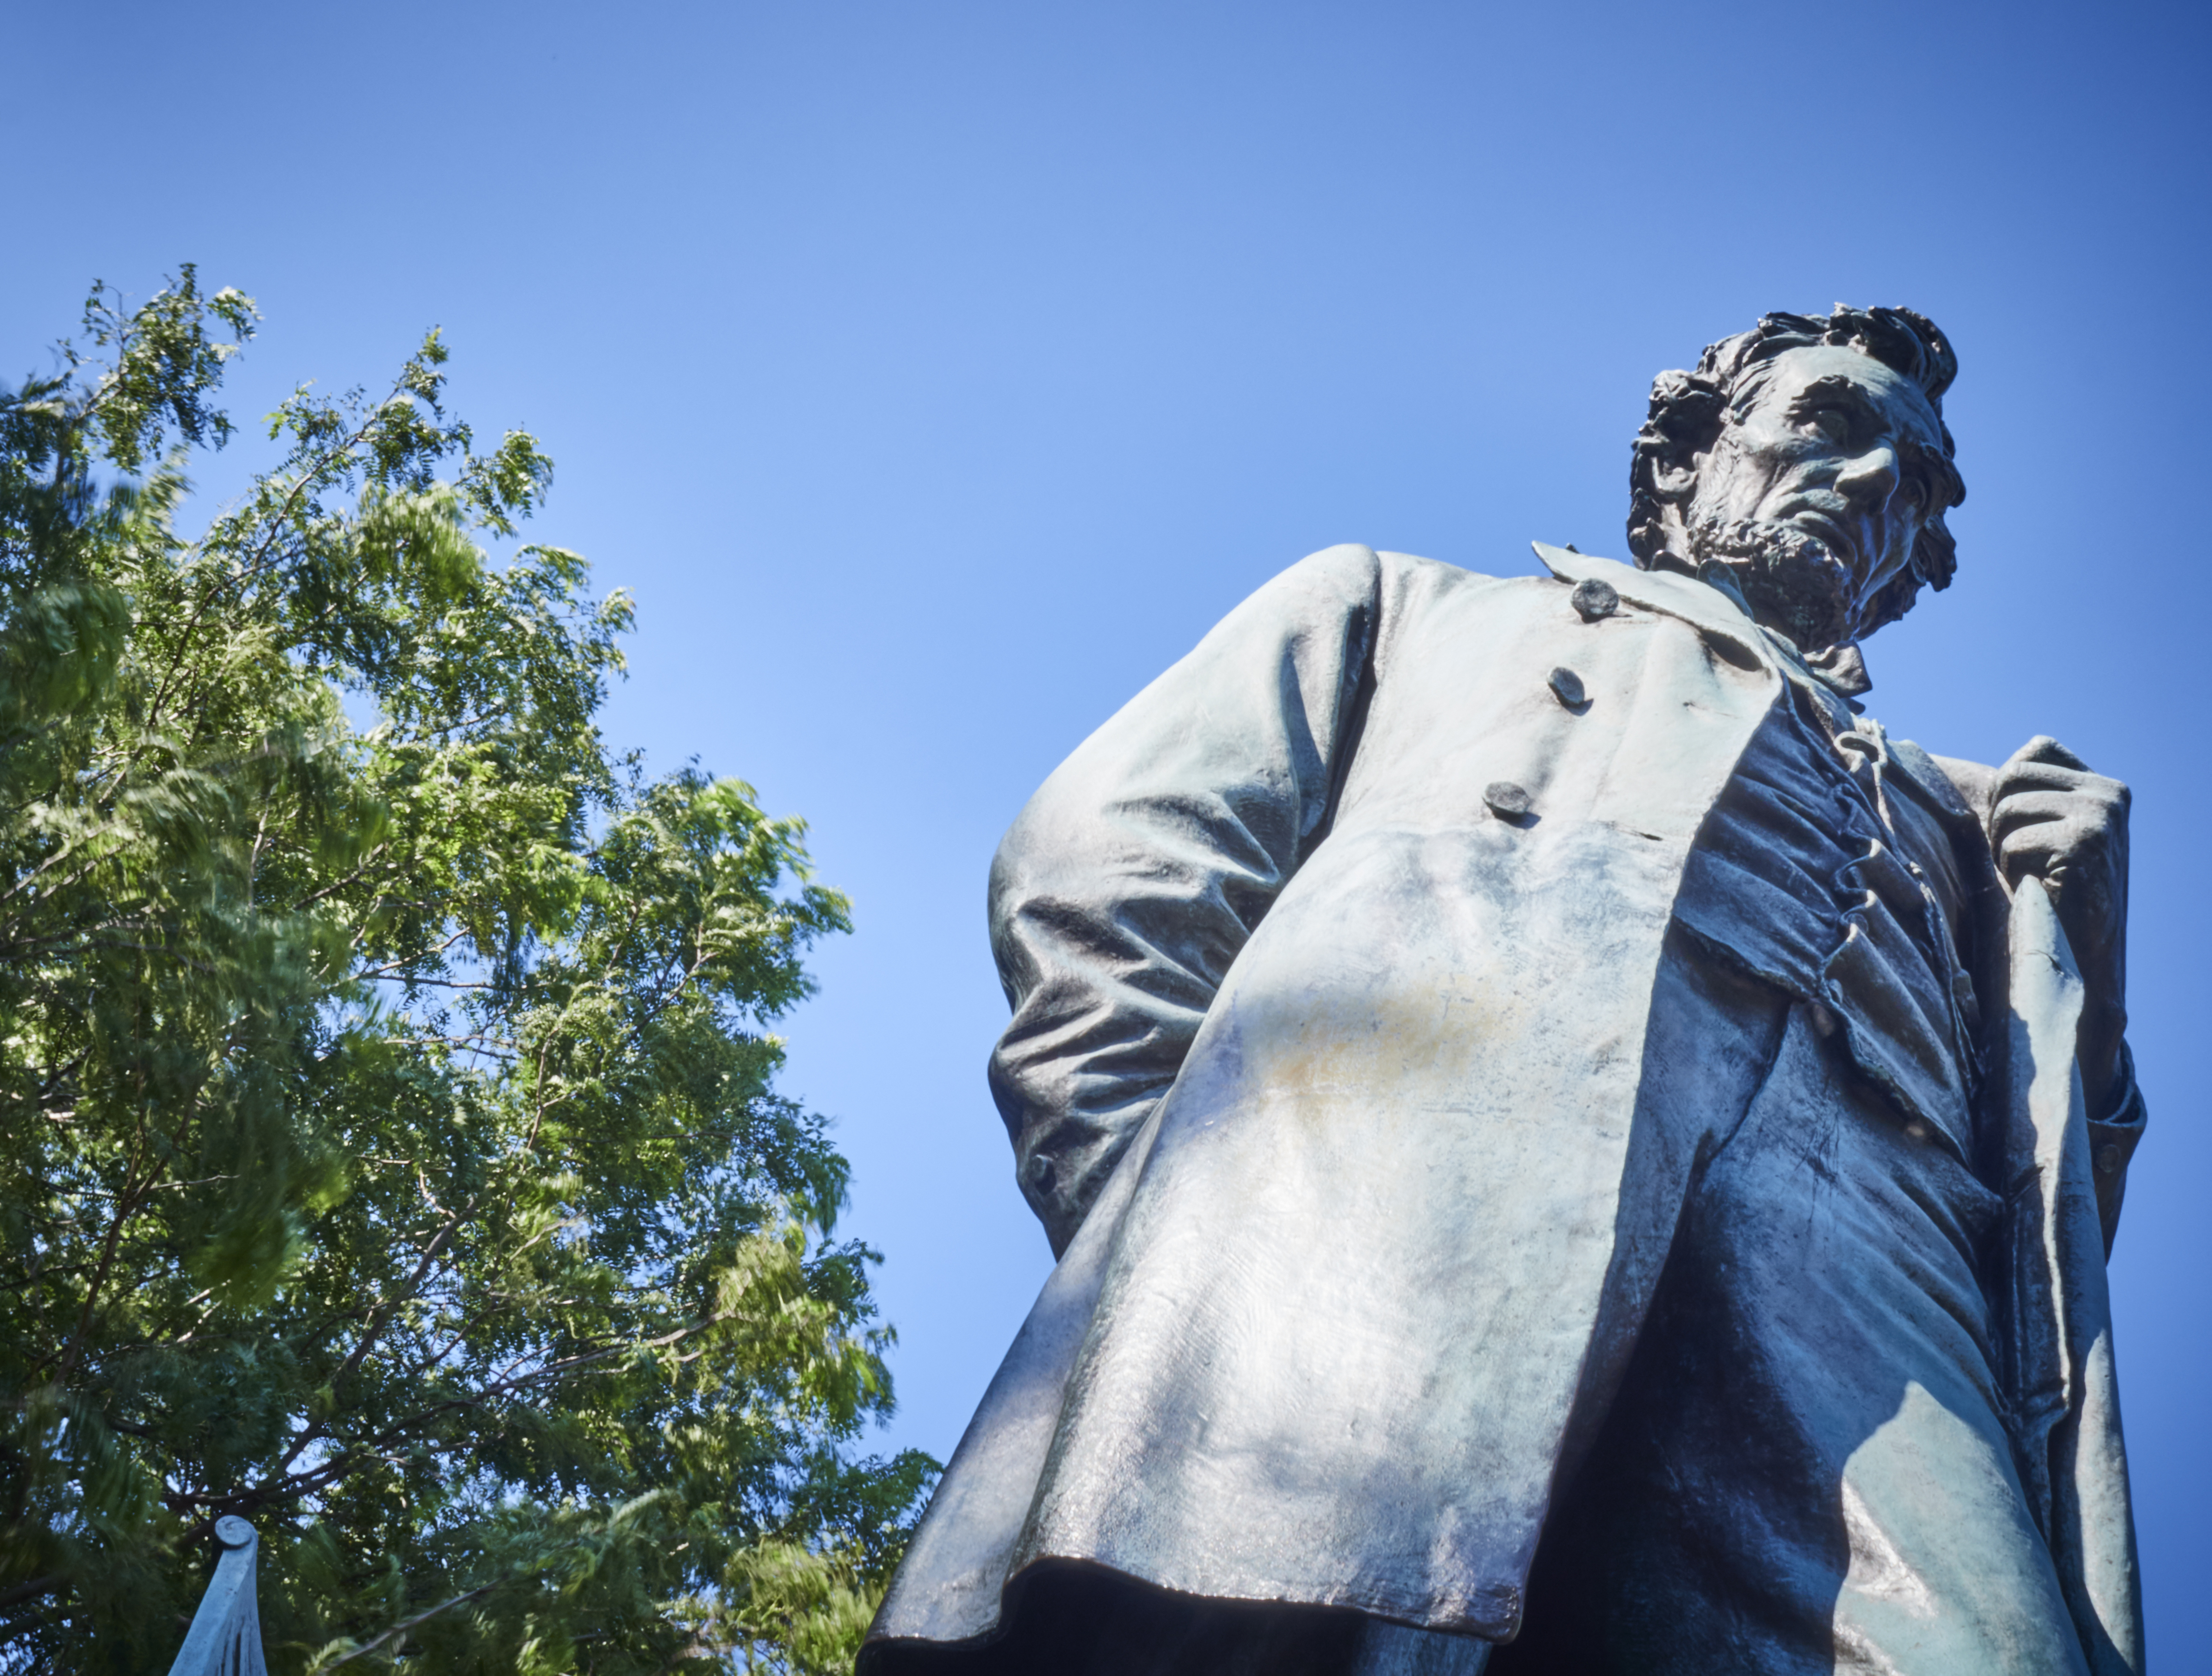 A statue of Abraham Lincoln in Chicago's Lincoln Park.